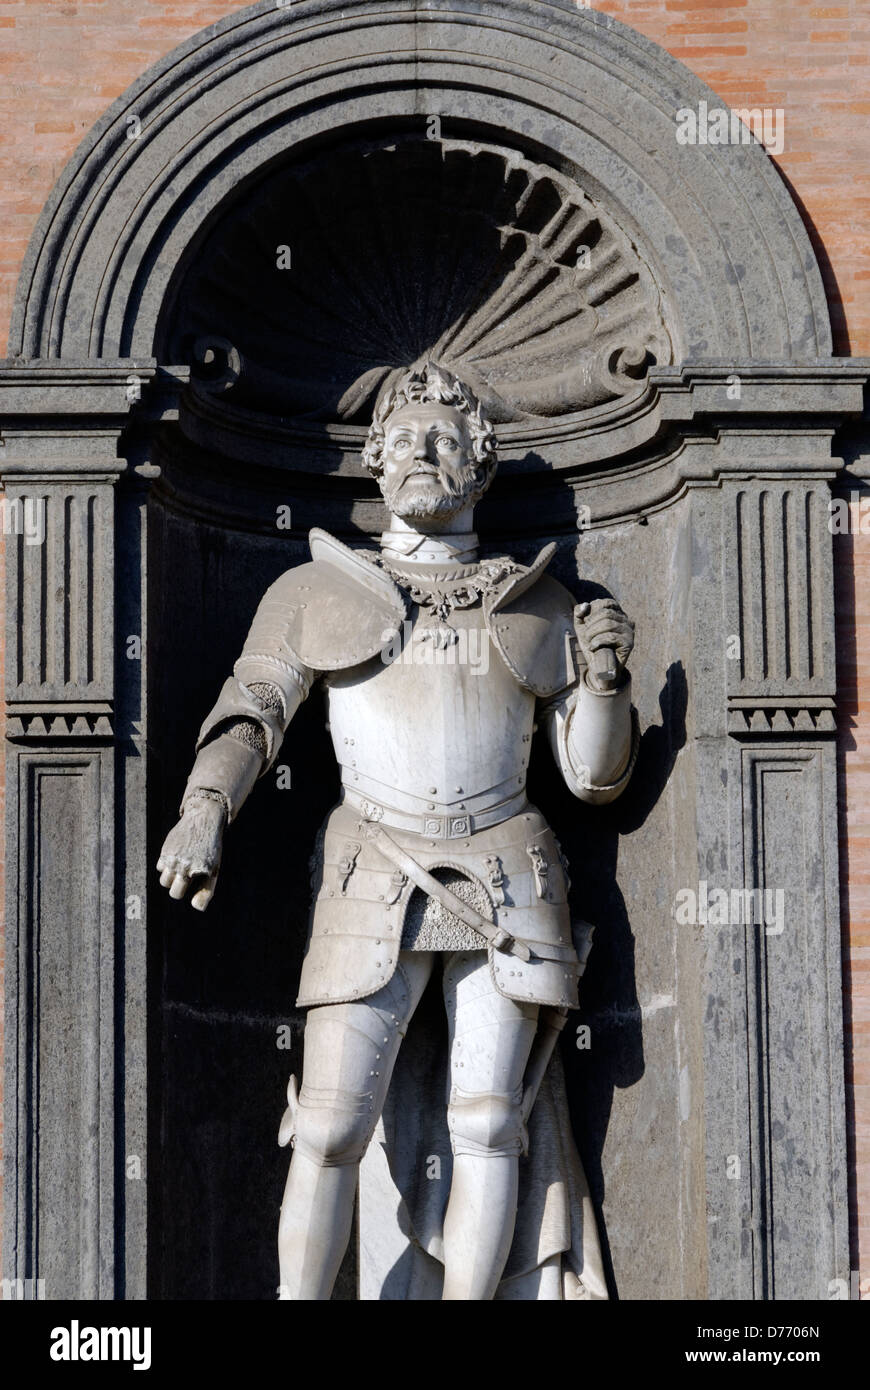 Naples. Italy. Statue of Charles V of Habsburg or Carlo V d Asburgo on facade of the Palazzo Reale or Royal palace. - Stock Image